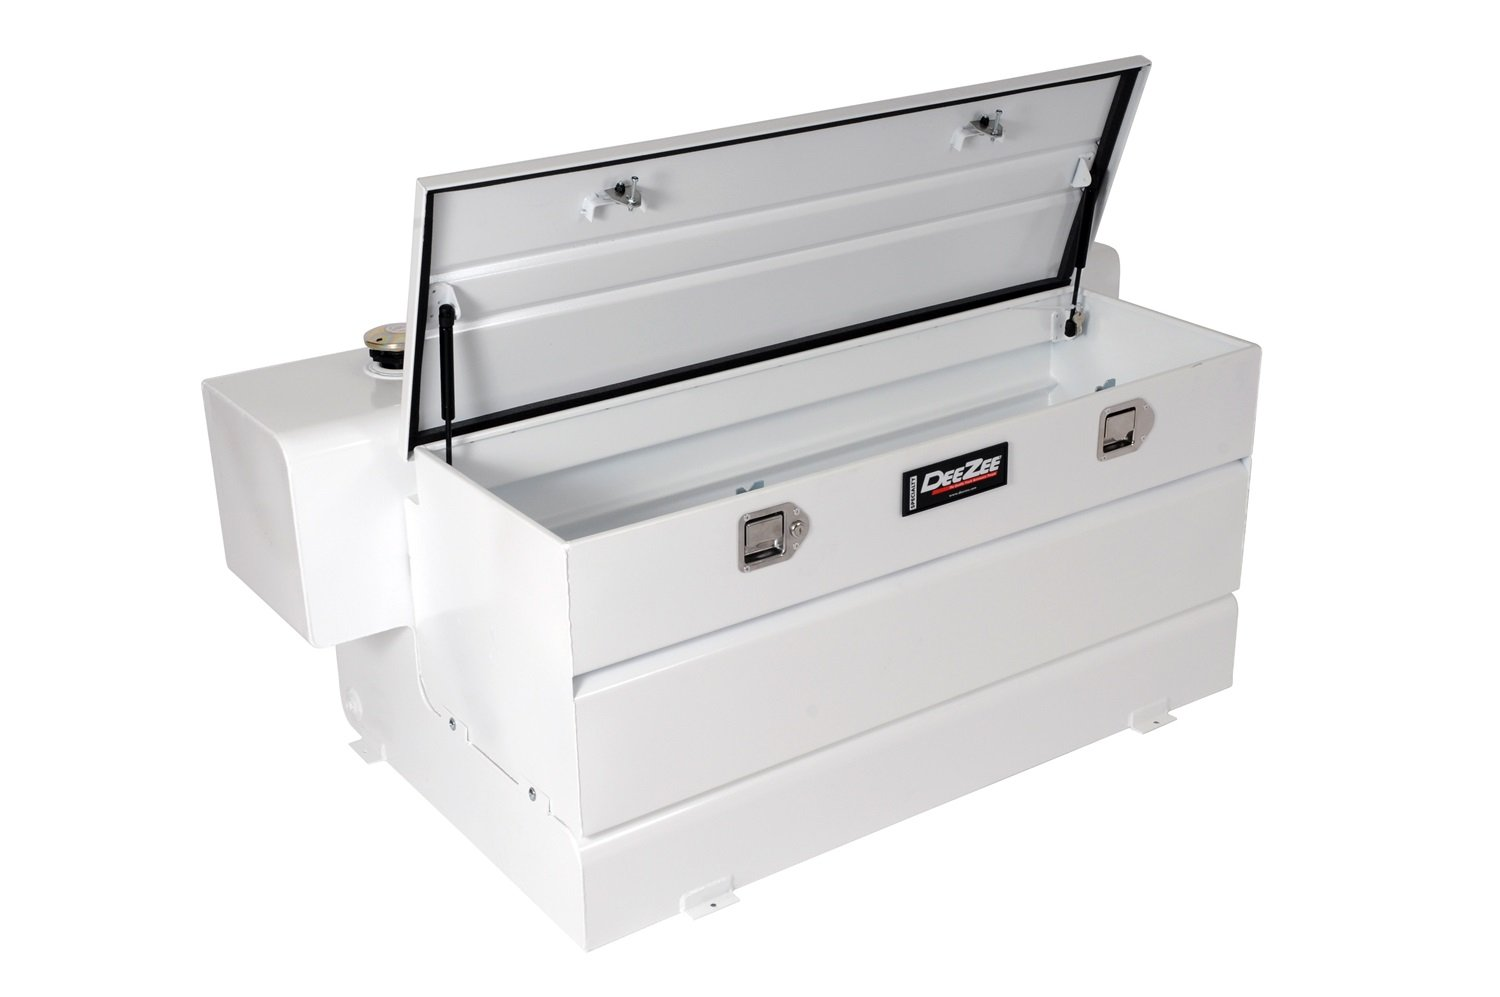 Dee Zee DZ91759S Combo Transfer Tank and Utility Chest - White Steel